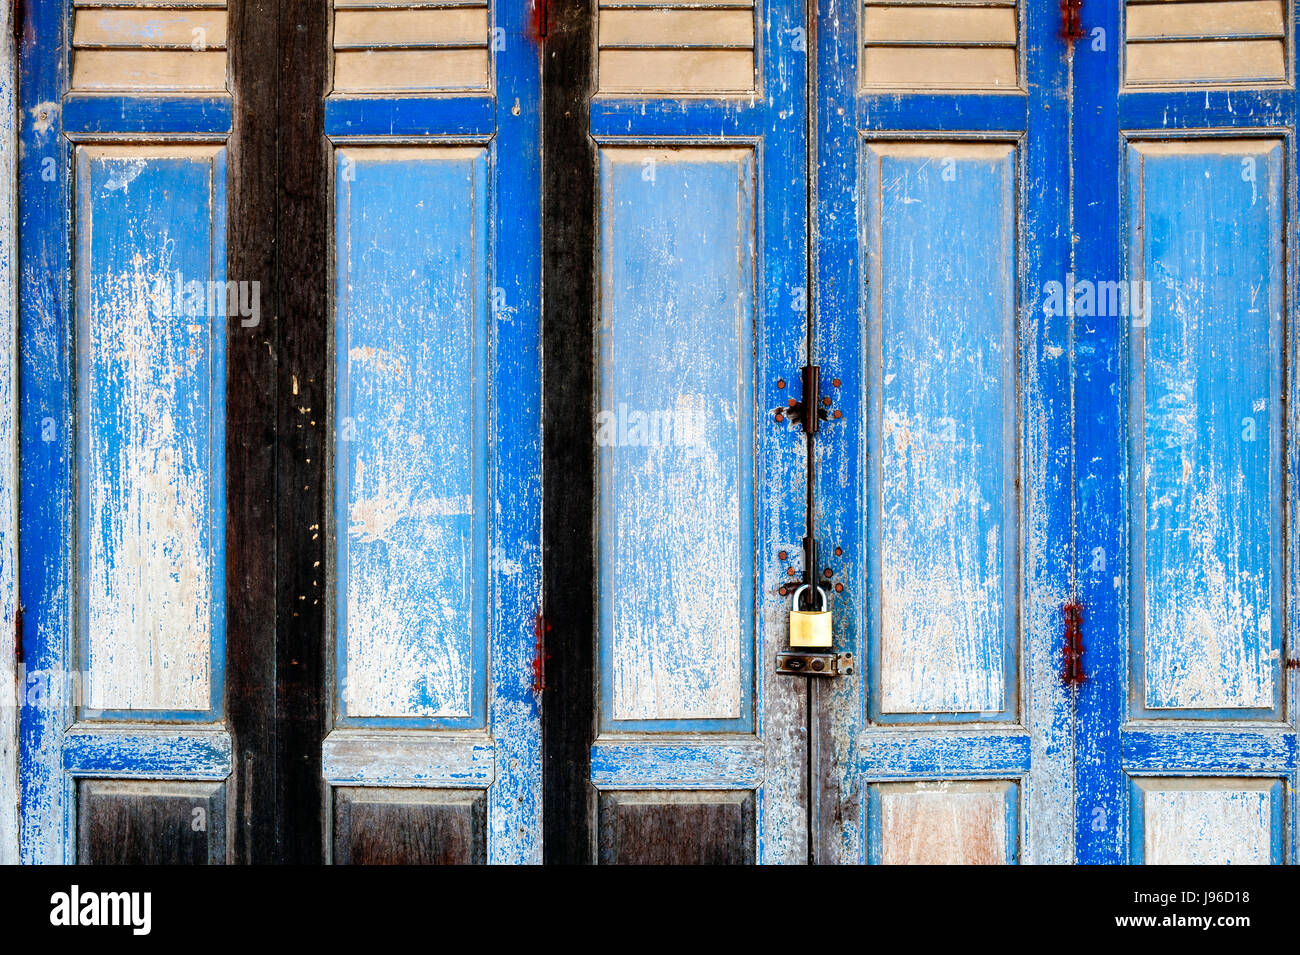 Background texture on old rustic blue wooden folding door of classic Sino-Portuguese architectural style shophouse Stock Photo